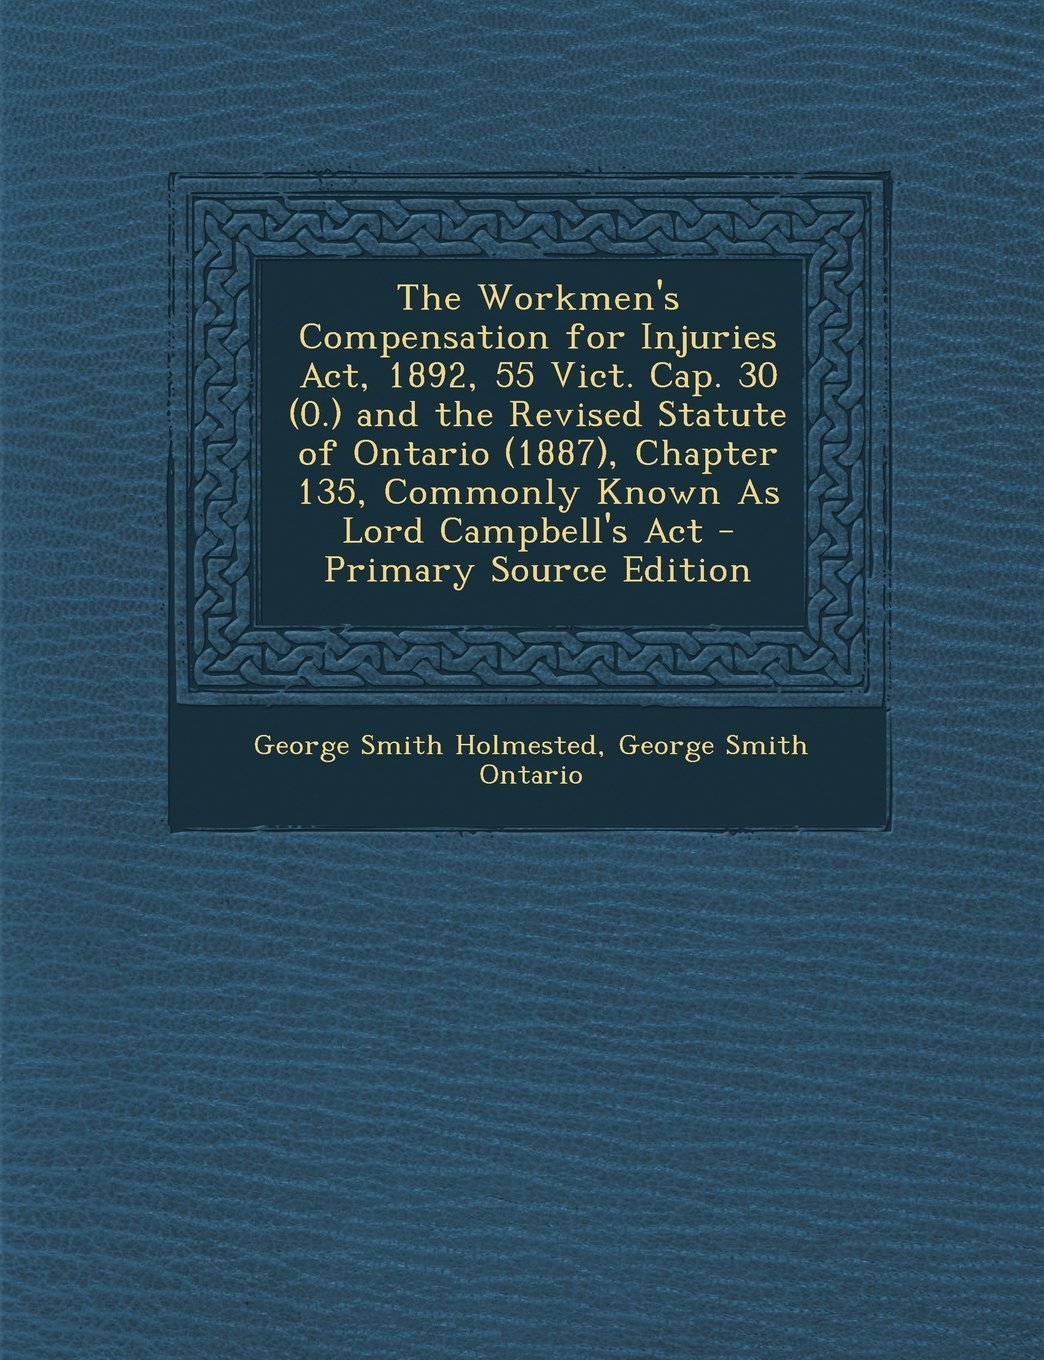 The Workmen's Compensation for Injuries Act, 1892, 55 Vict. Cap. 30 (0.) and the Revised Statute of Ontario (1887), Chapter 135, Commonly Known As Lord Campbell's Act pdf